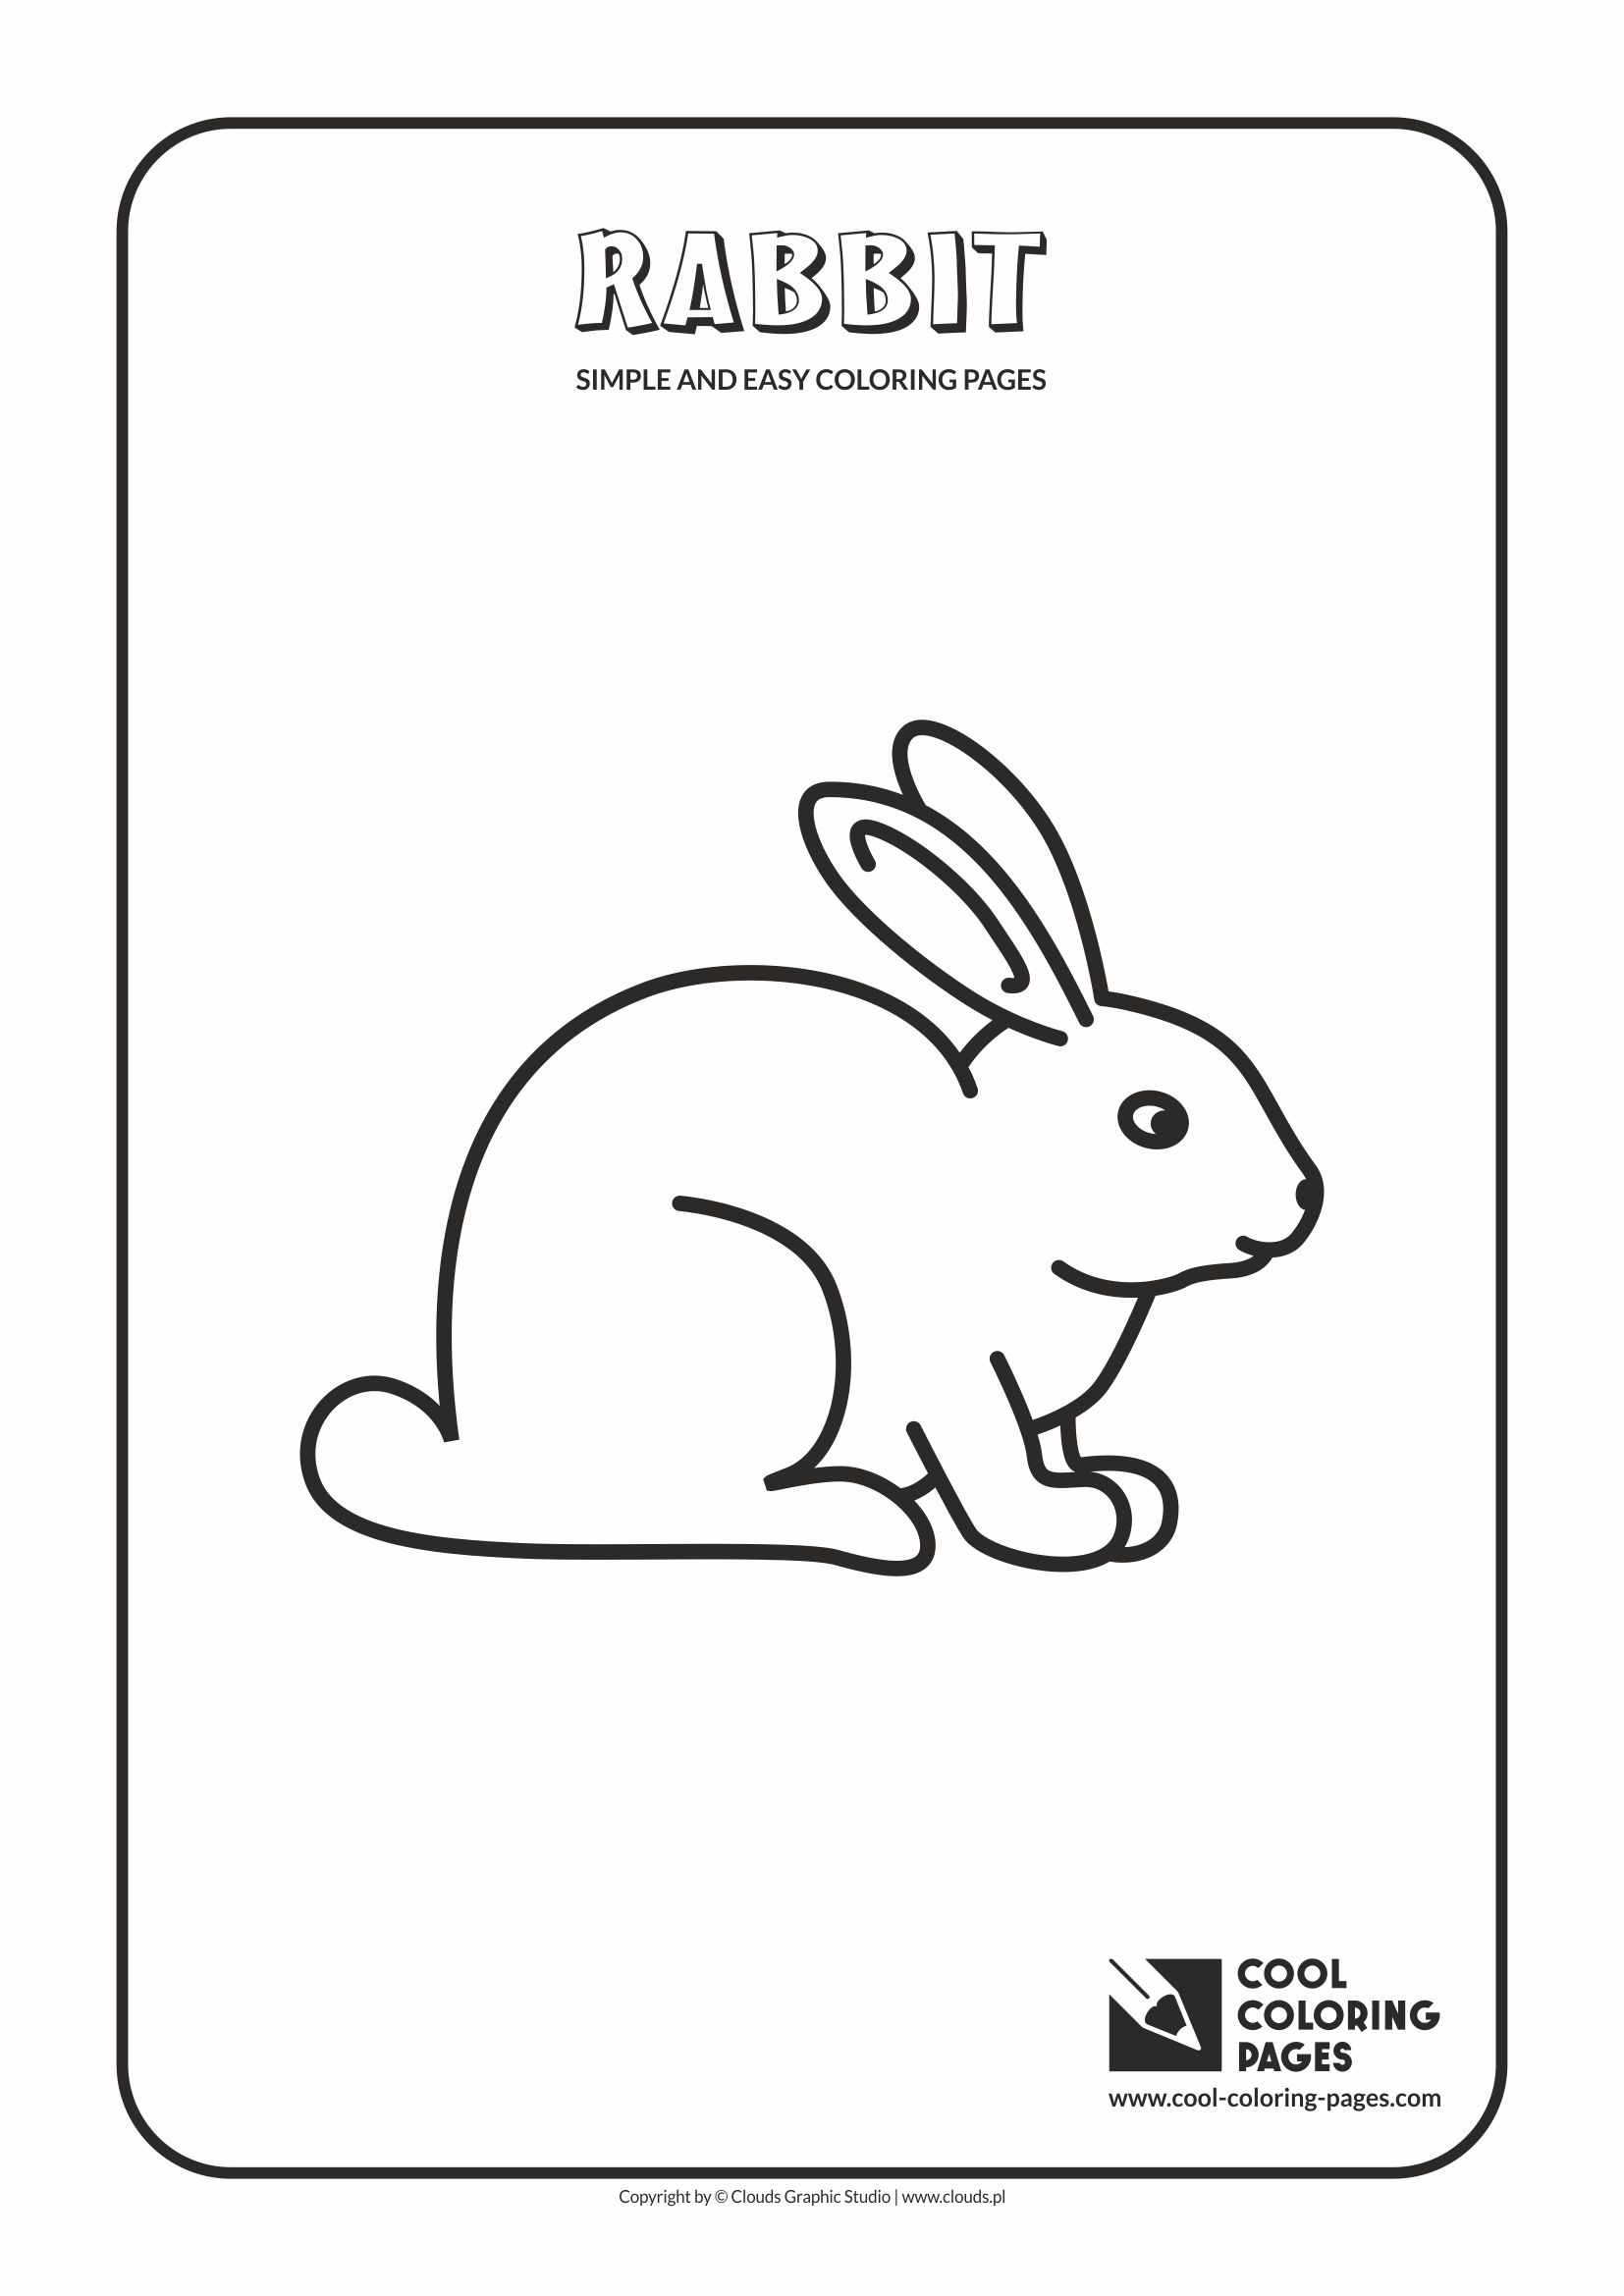 Simple and easy coloring pages for toddlers - Rabbit